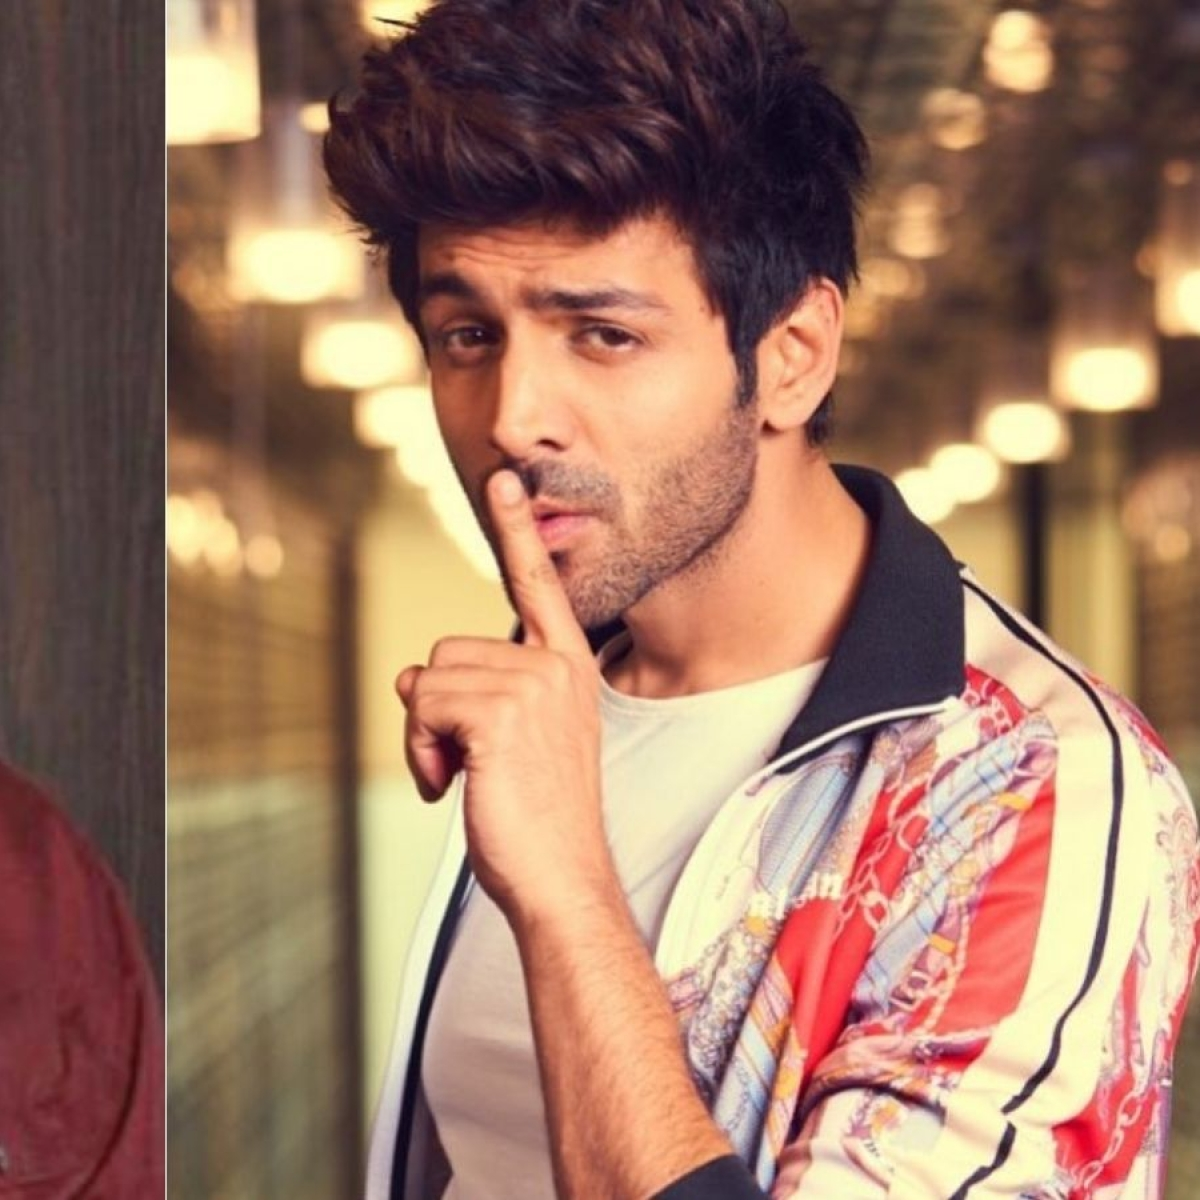 After 'Dostana 2' and 'Freddie', Kartik Aaryan ousted from Aanand L Rai's movie? Filmmaker's team clarifies